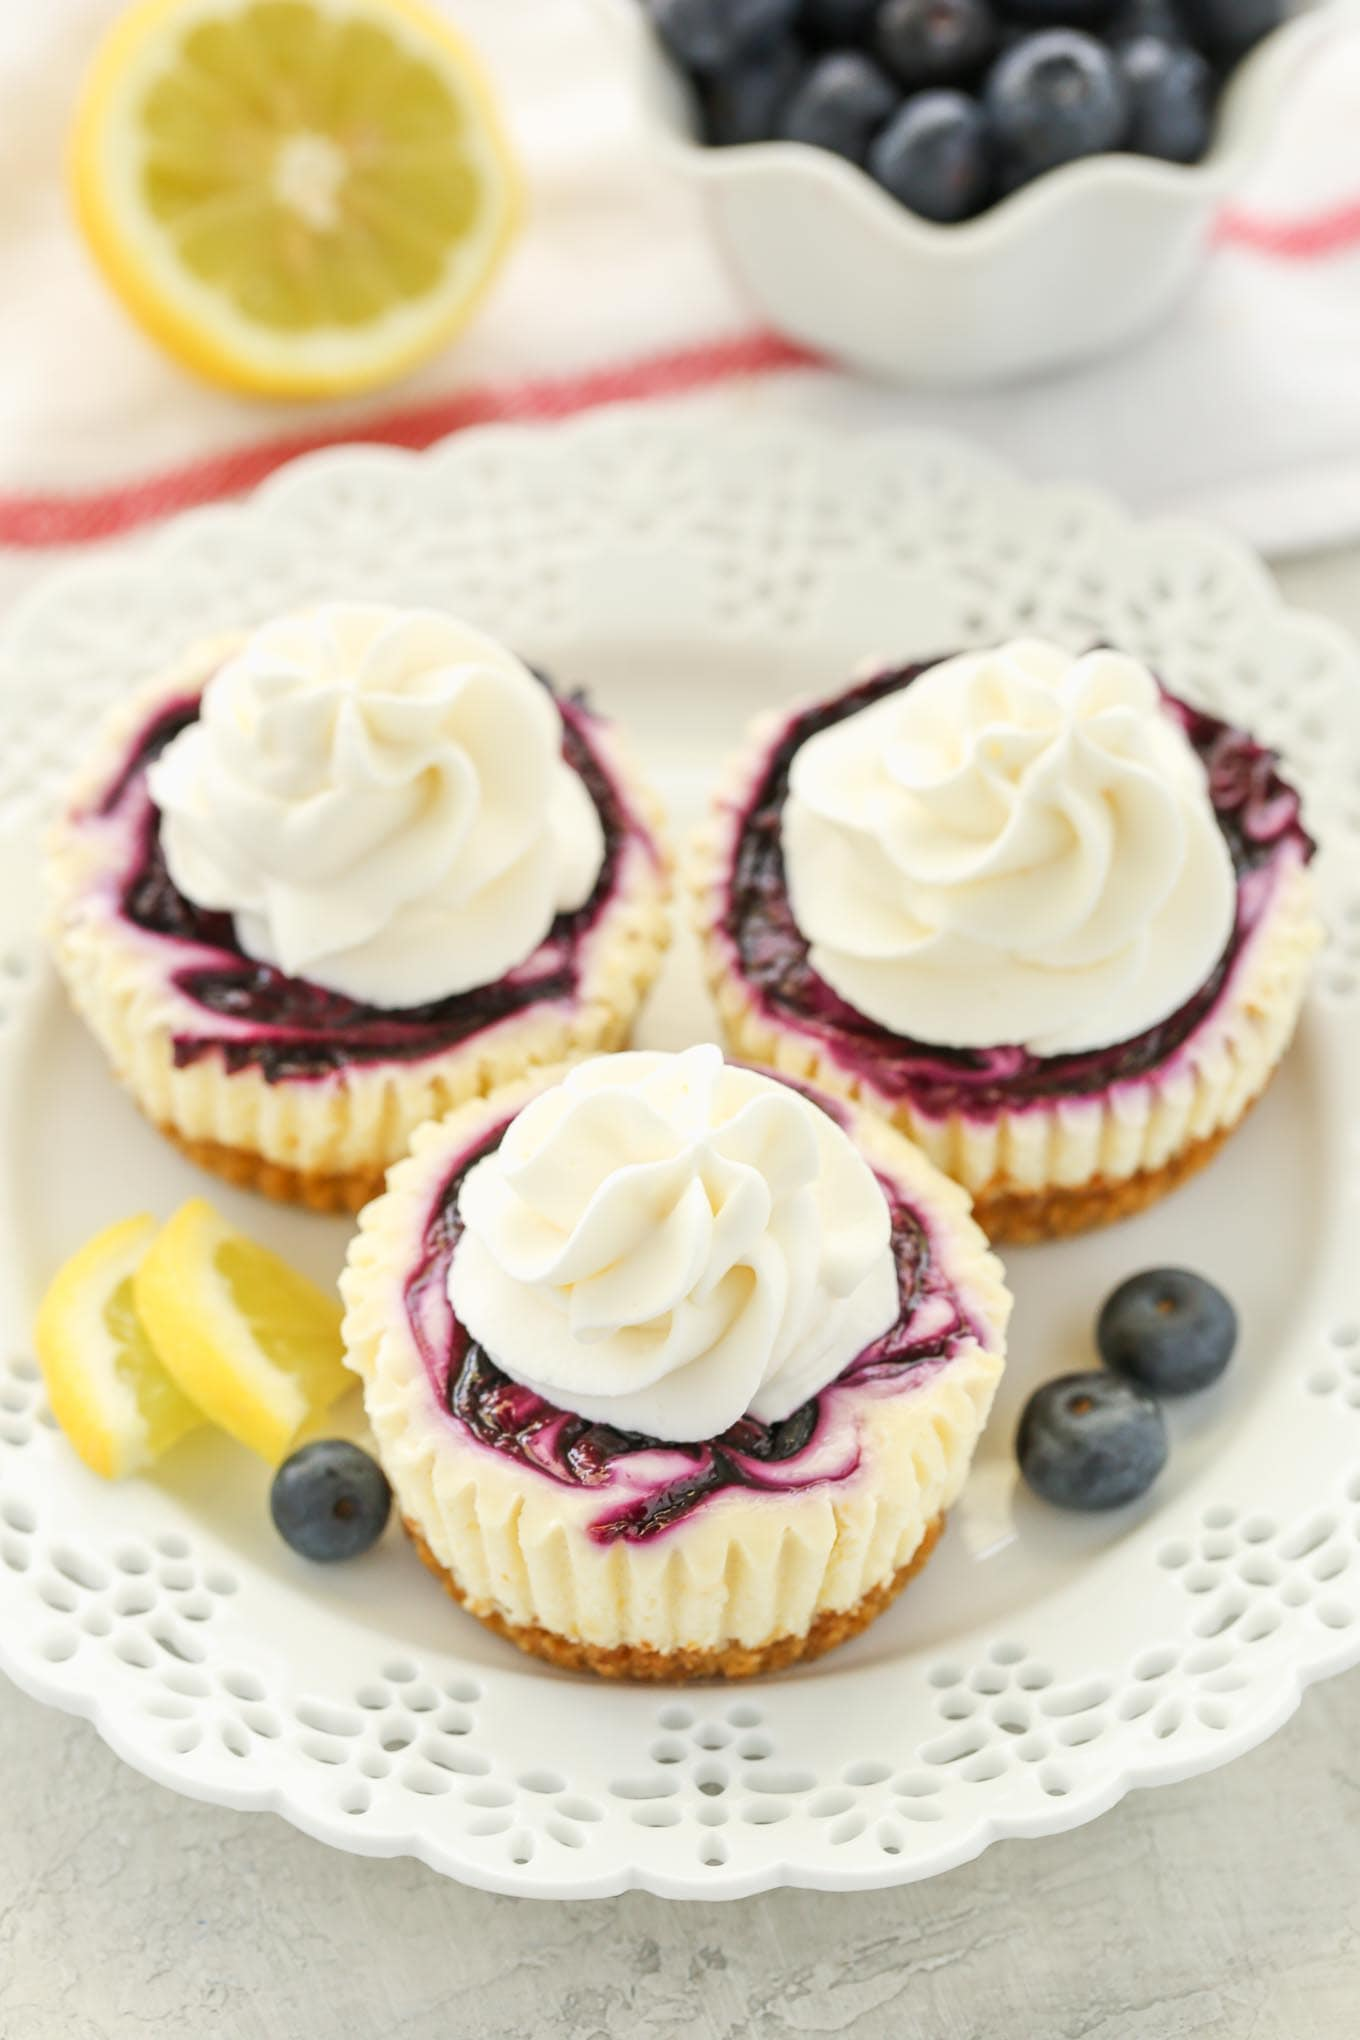 These Mini Lemon Blueberry Cheesecakes feature an easy homemade graham cracker crust, smooth and creamy lemon cheesecake filling, and a simple blueberry swirl!